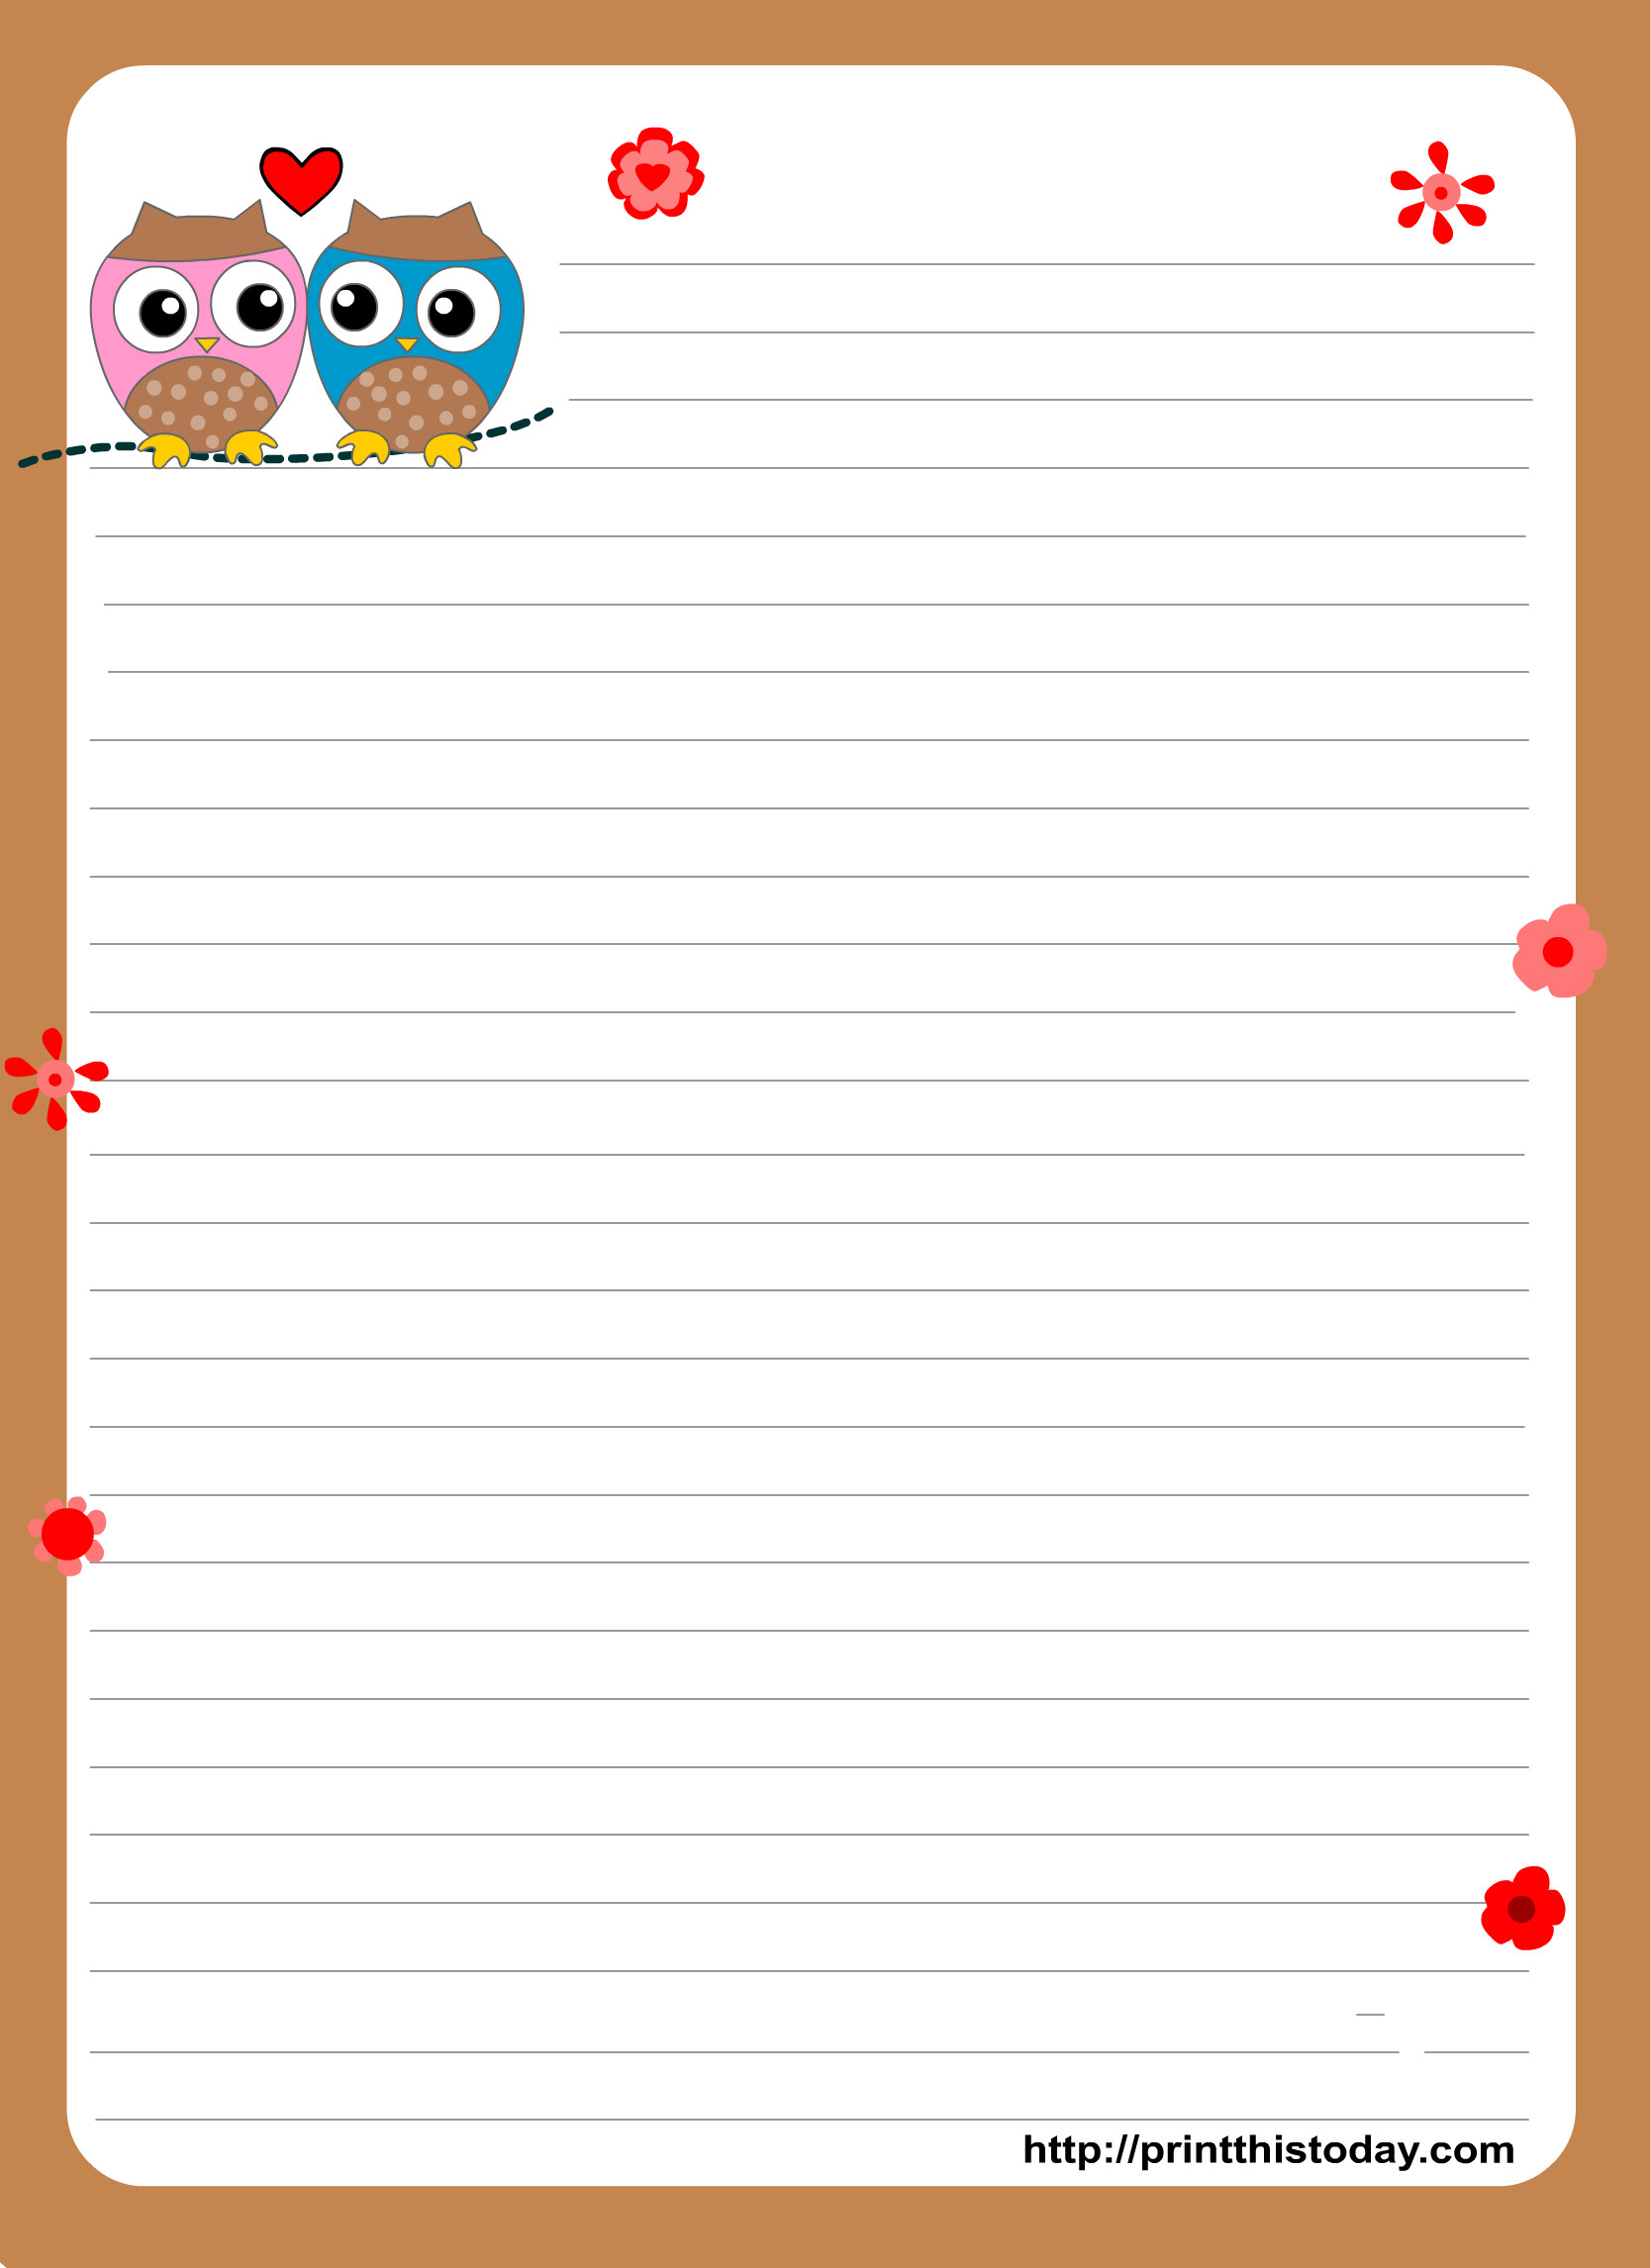 Free Stationery Paper Templates 1000 Images About Free Printable Stationary On Pinterest